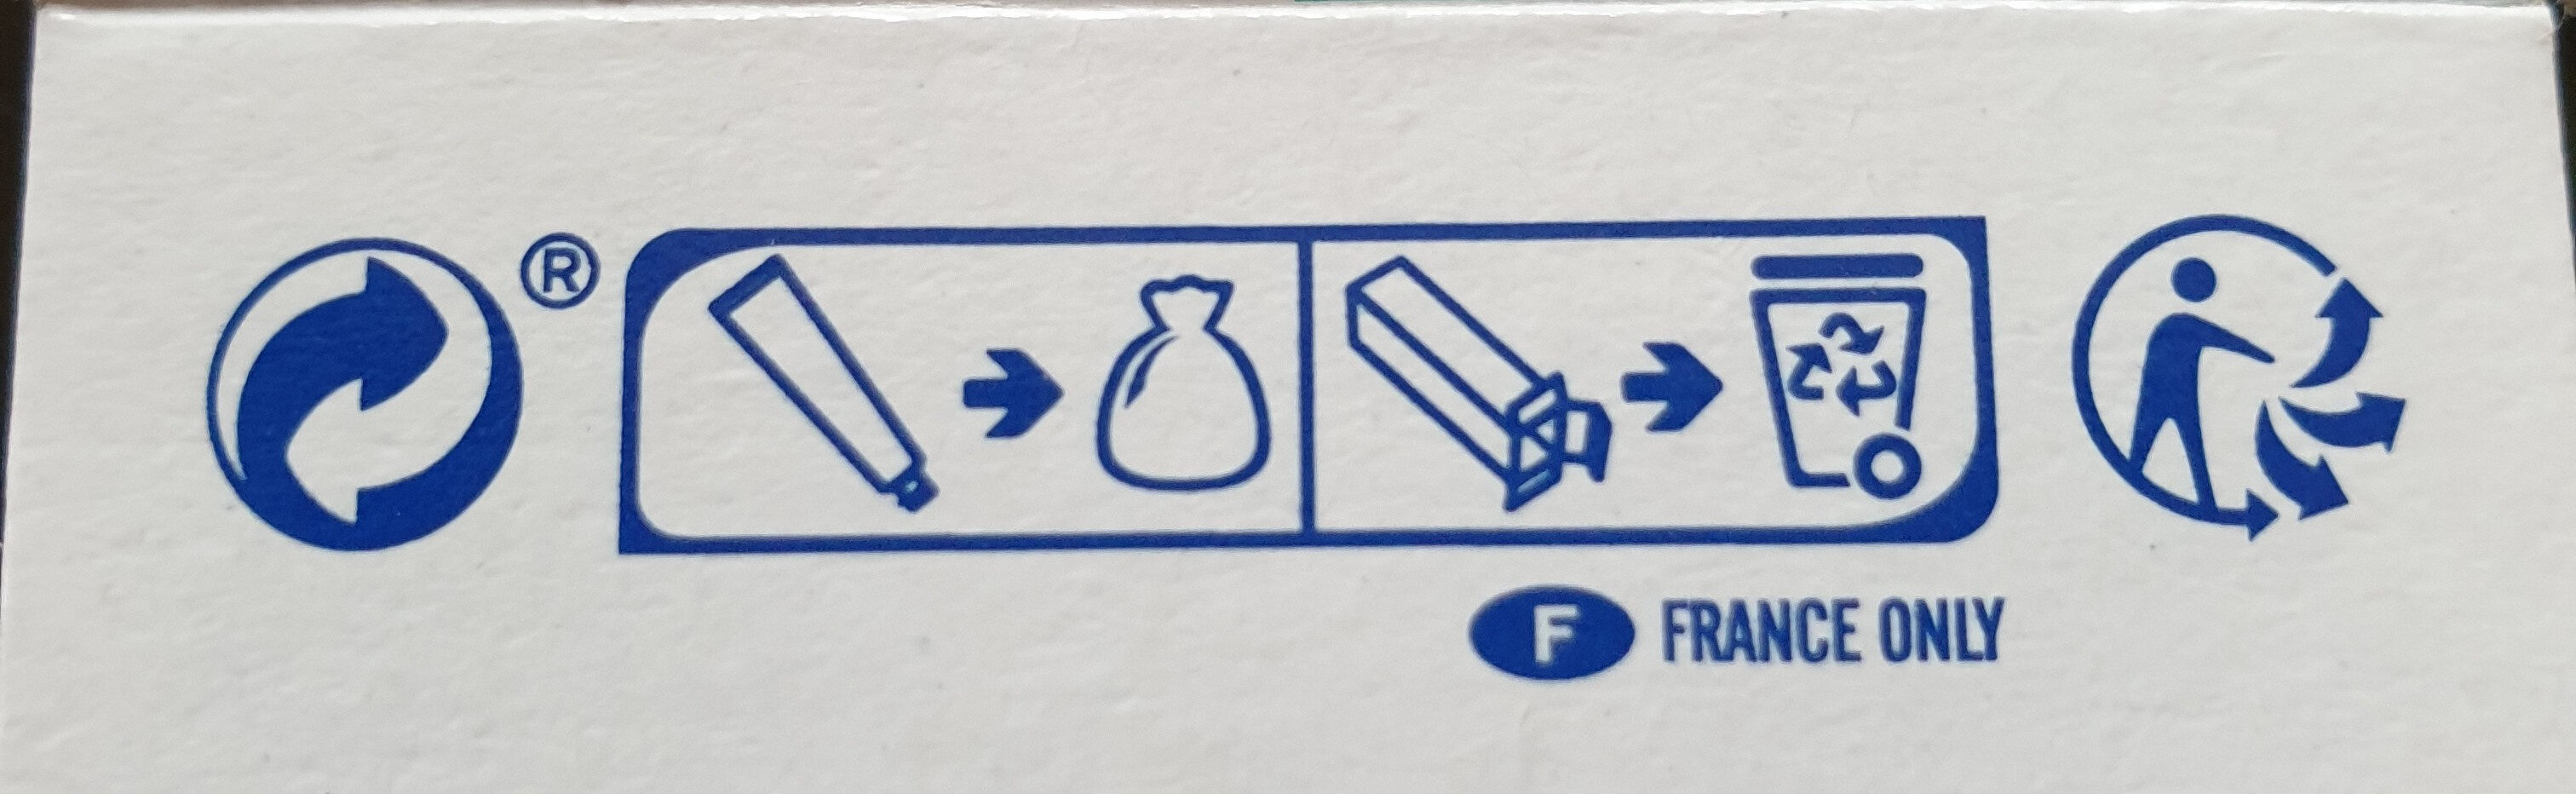 Dentavie gencives sensibles - Recycling instructions and/or packaging information - fr